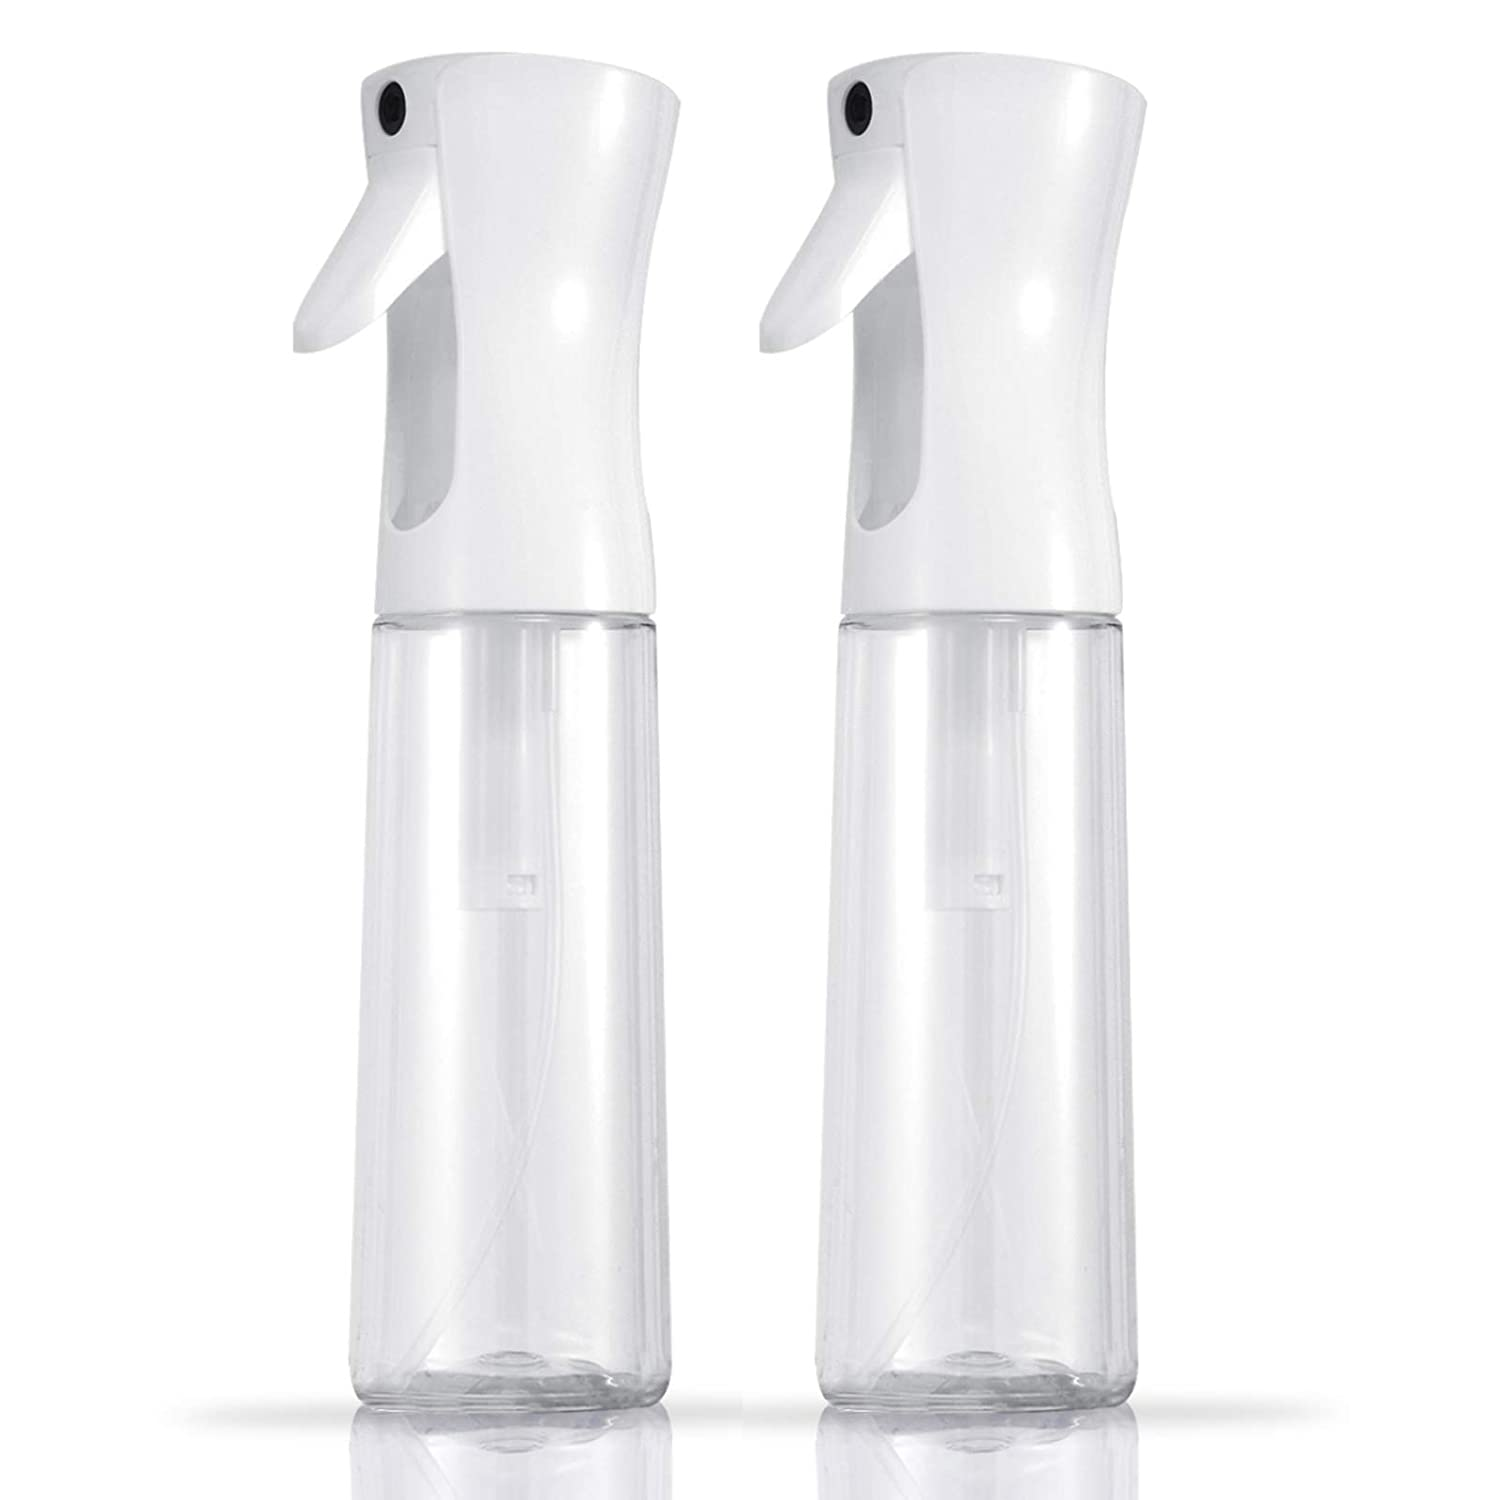 Hair Mister Water Spray Bottle - Continuous 360 Fine Mist Sprayer for Curl Hair Cleaning Solutions Essential Oil Alcohol Plant, Professional Empty Misting Squirt Bottles, 10oz/300ml, Clear, 2Pack